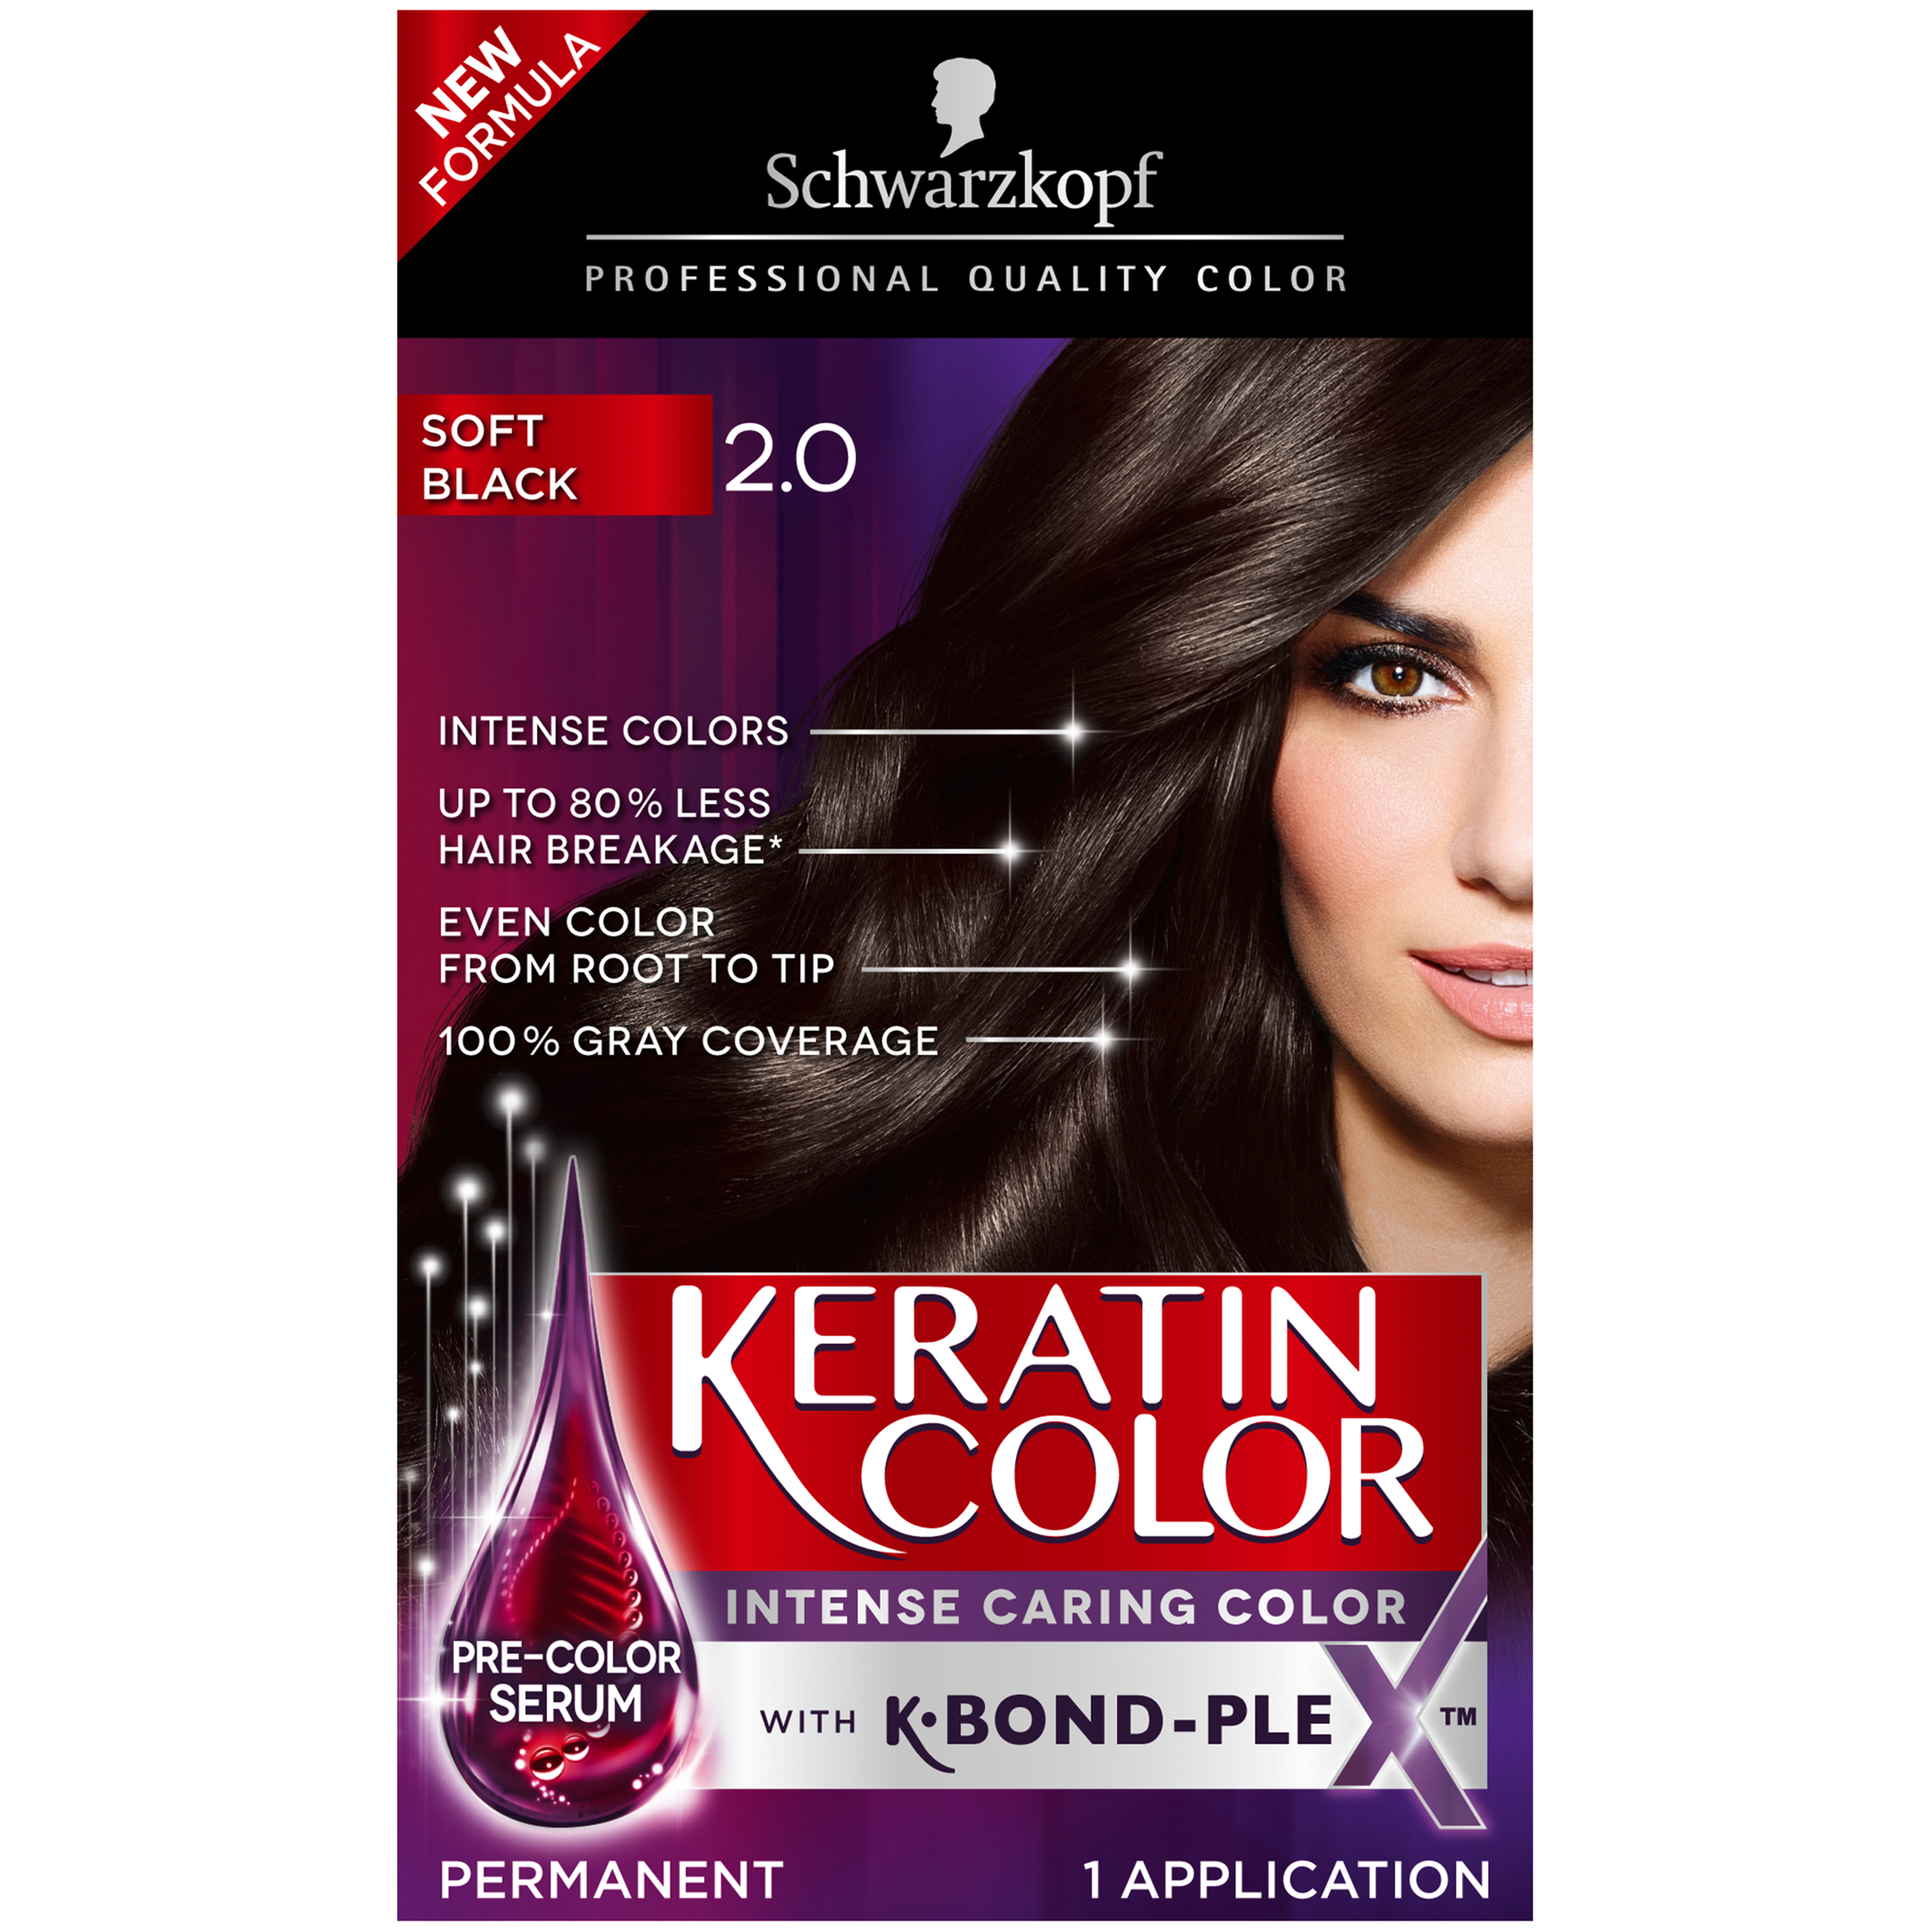 Ebony hair dye